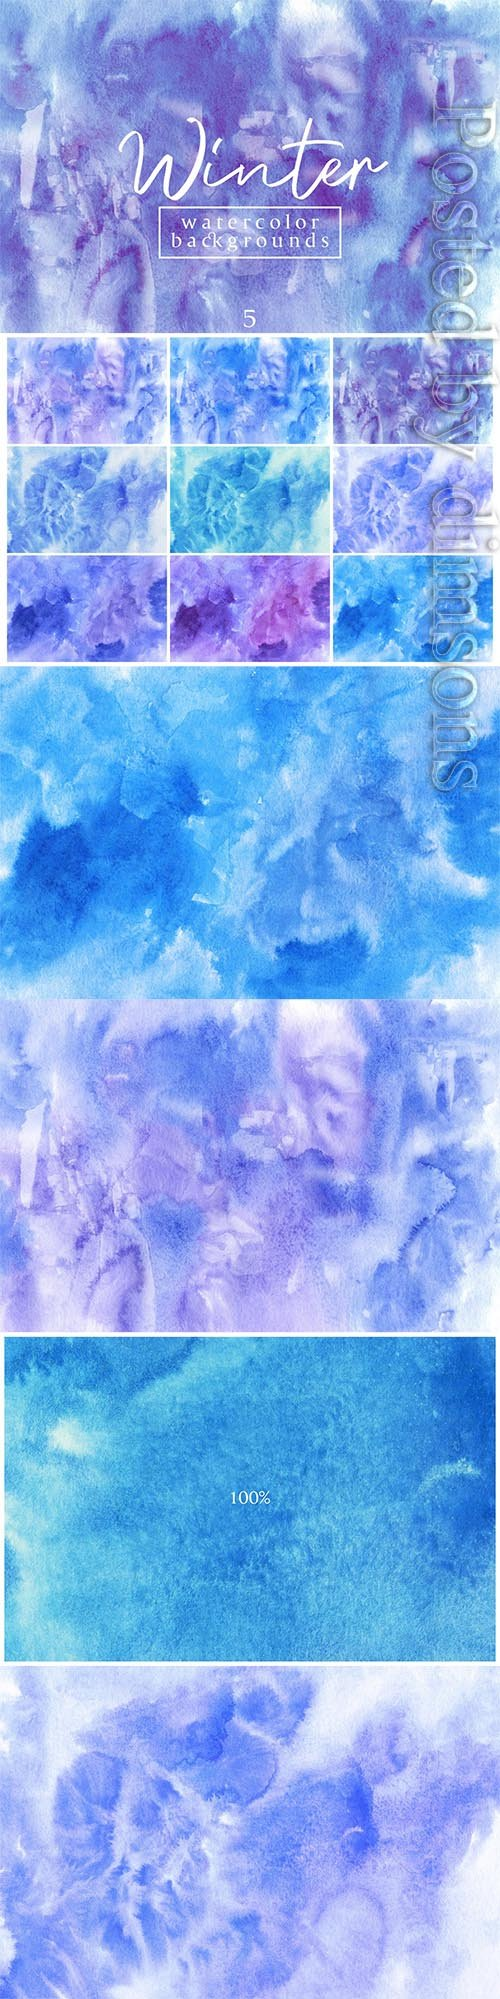 Winter Waterolor Backgrounds 5